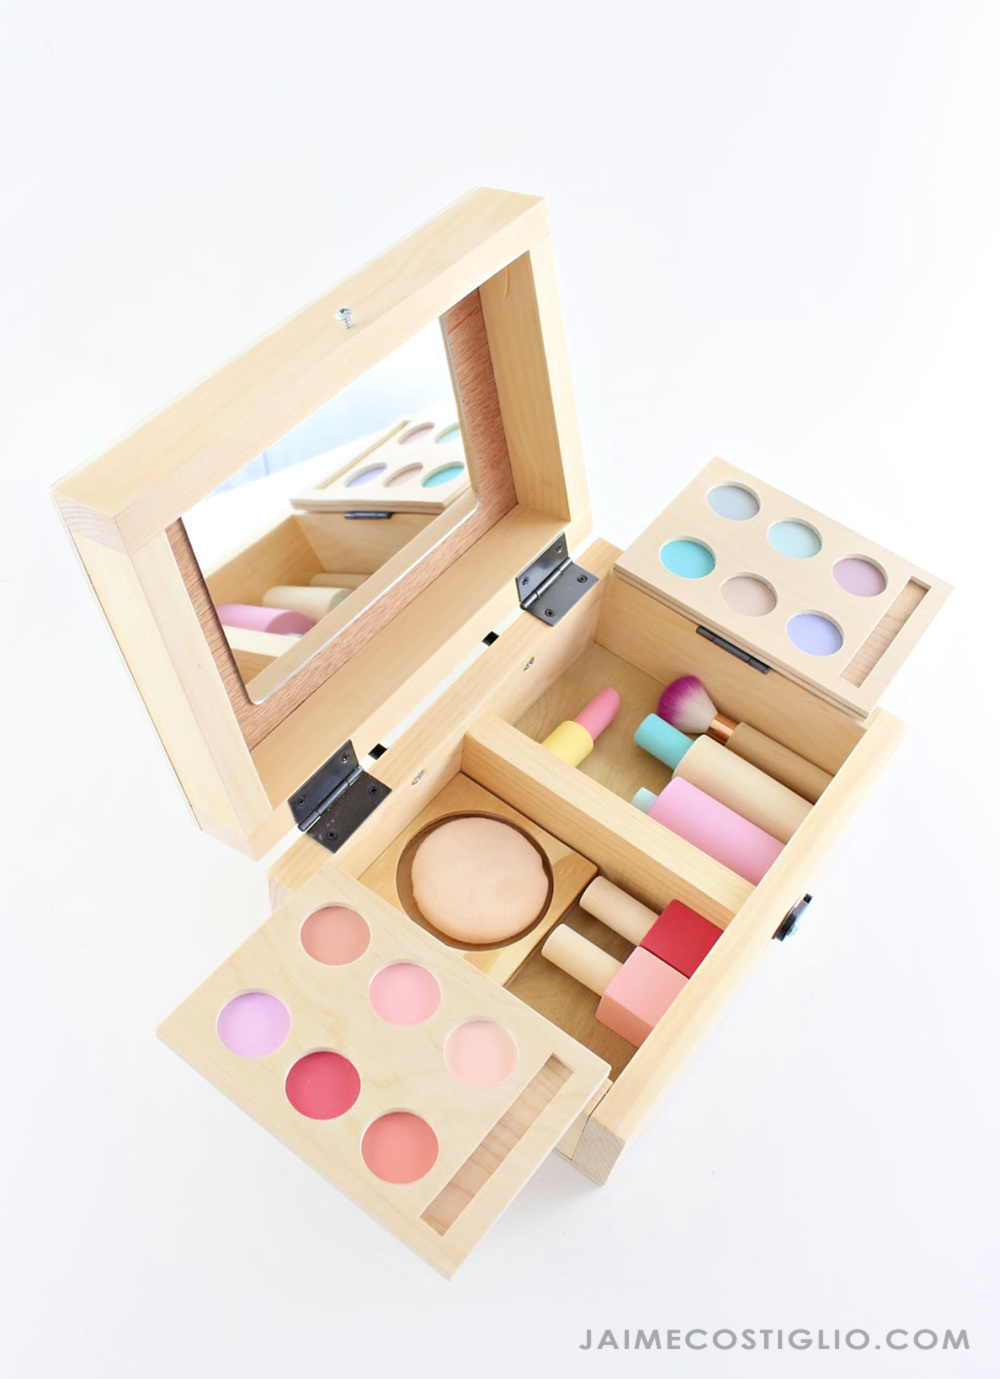 Toy Makeup Set Ana white, Makeup set, Woodworking projects